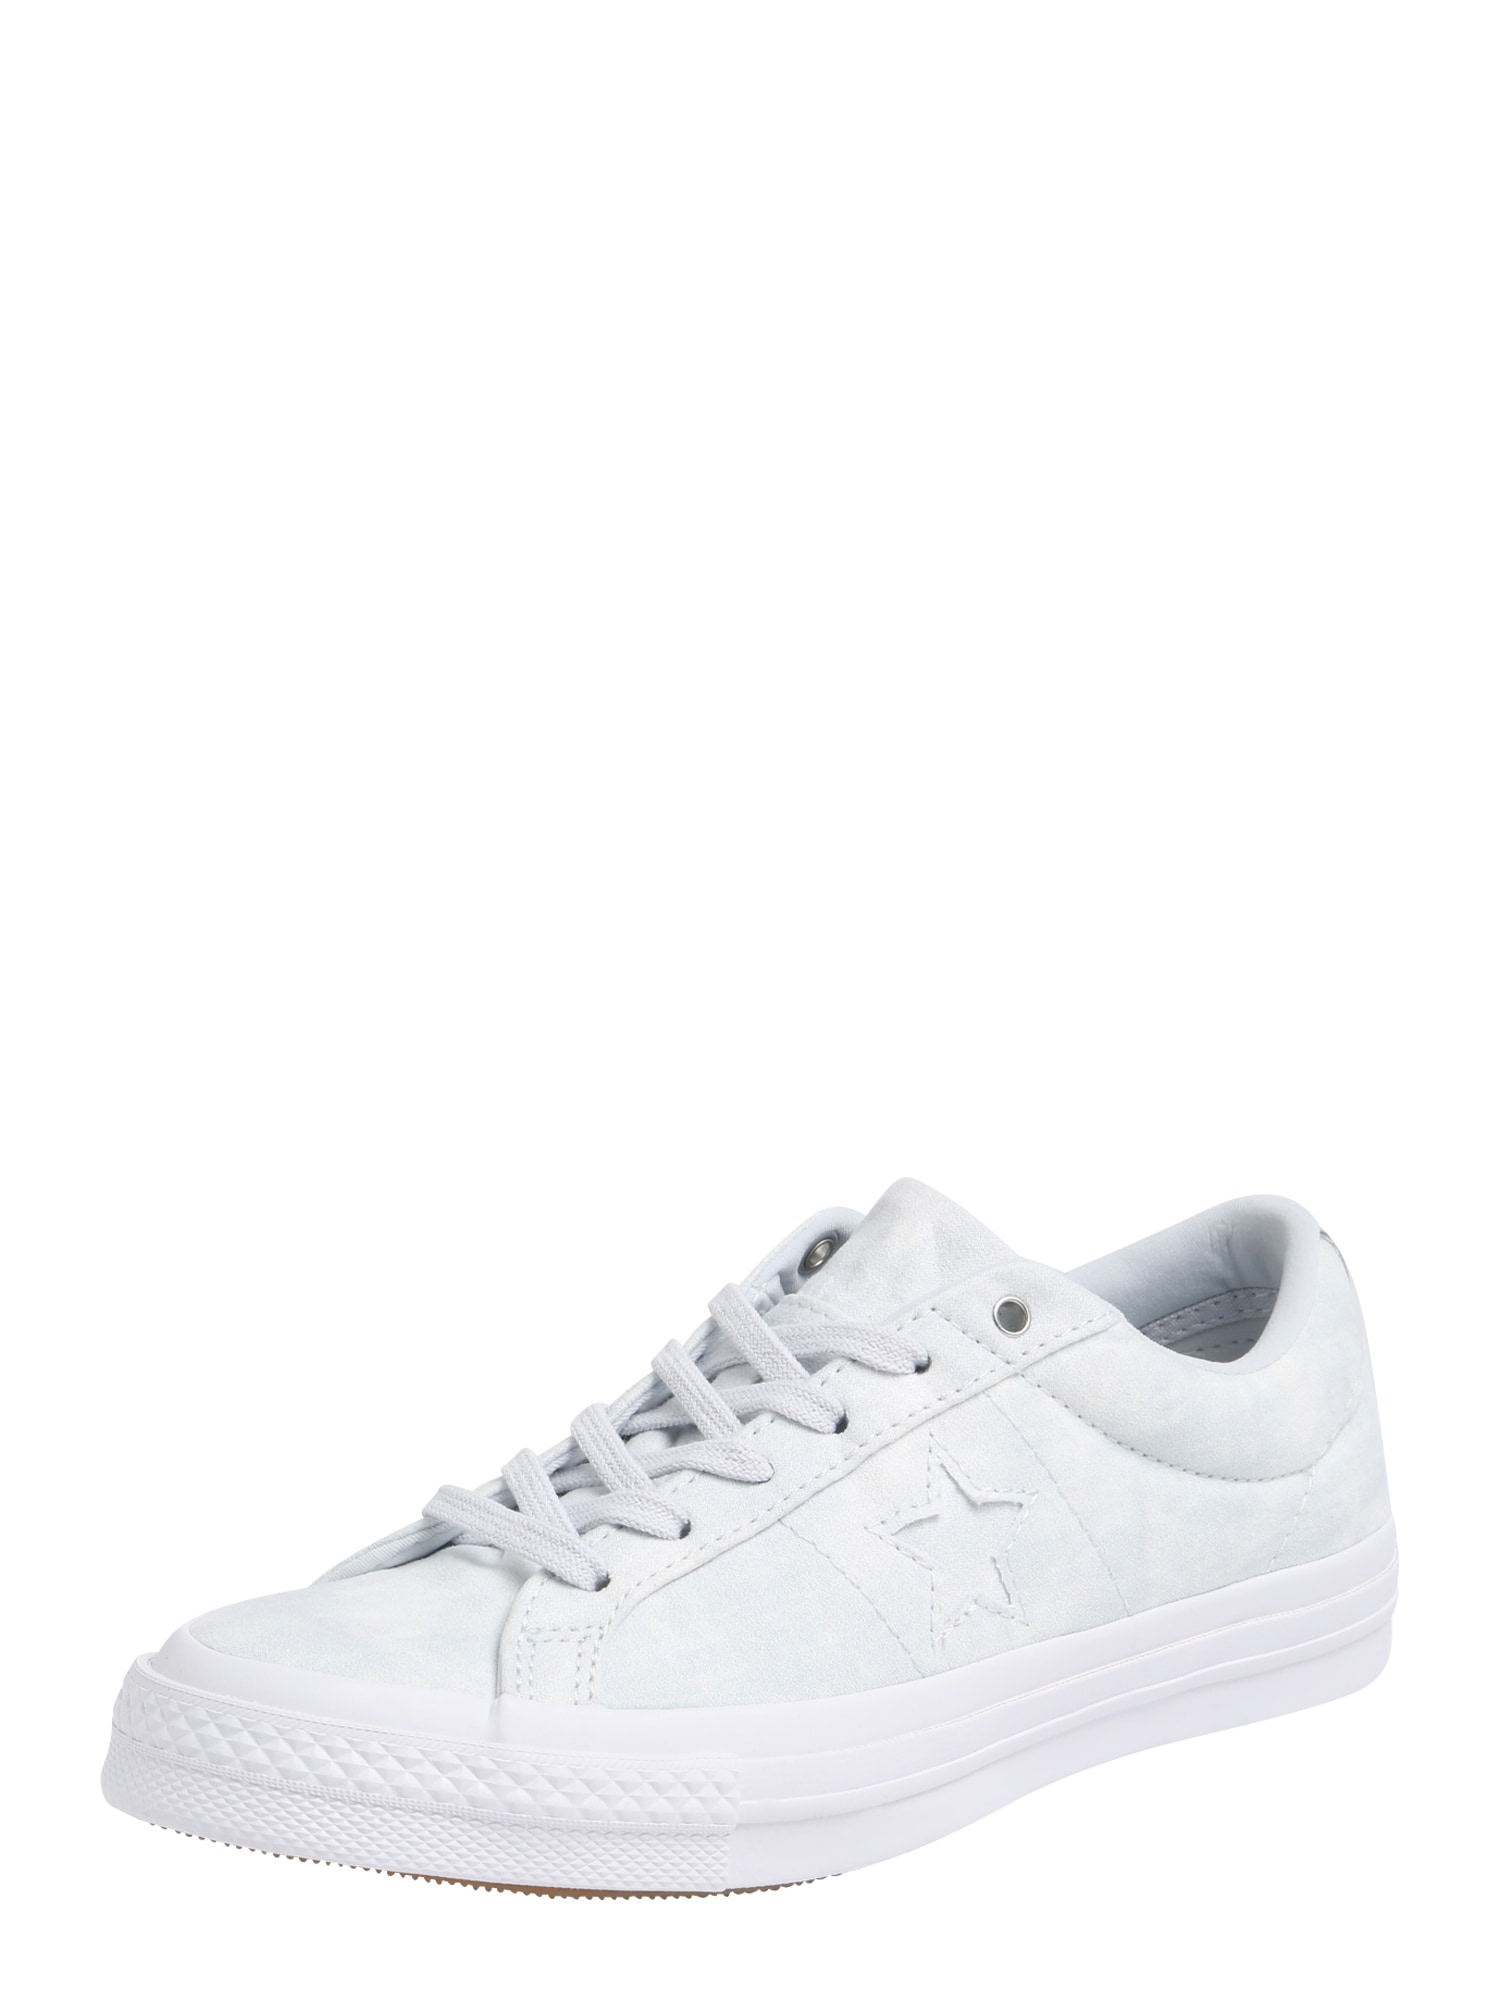 CONVERSE, Dames Sneakers laag 'One Star OxX', lichtblauw / wit